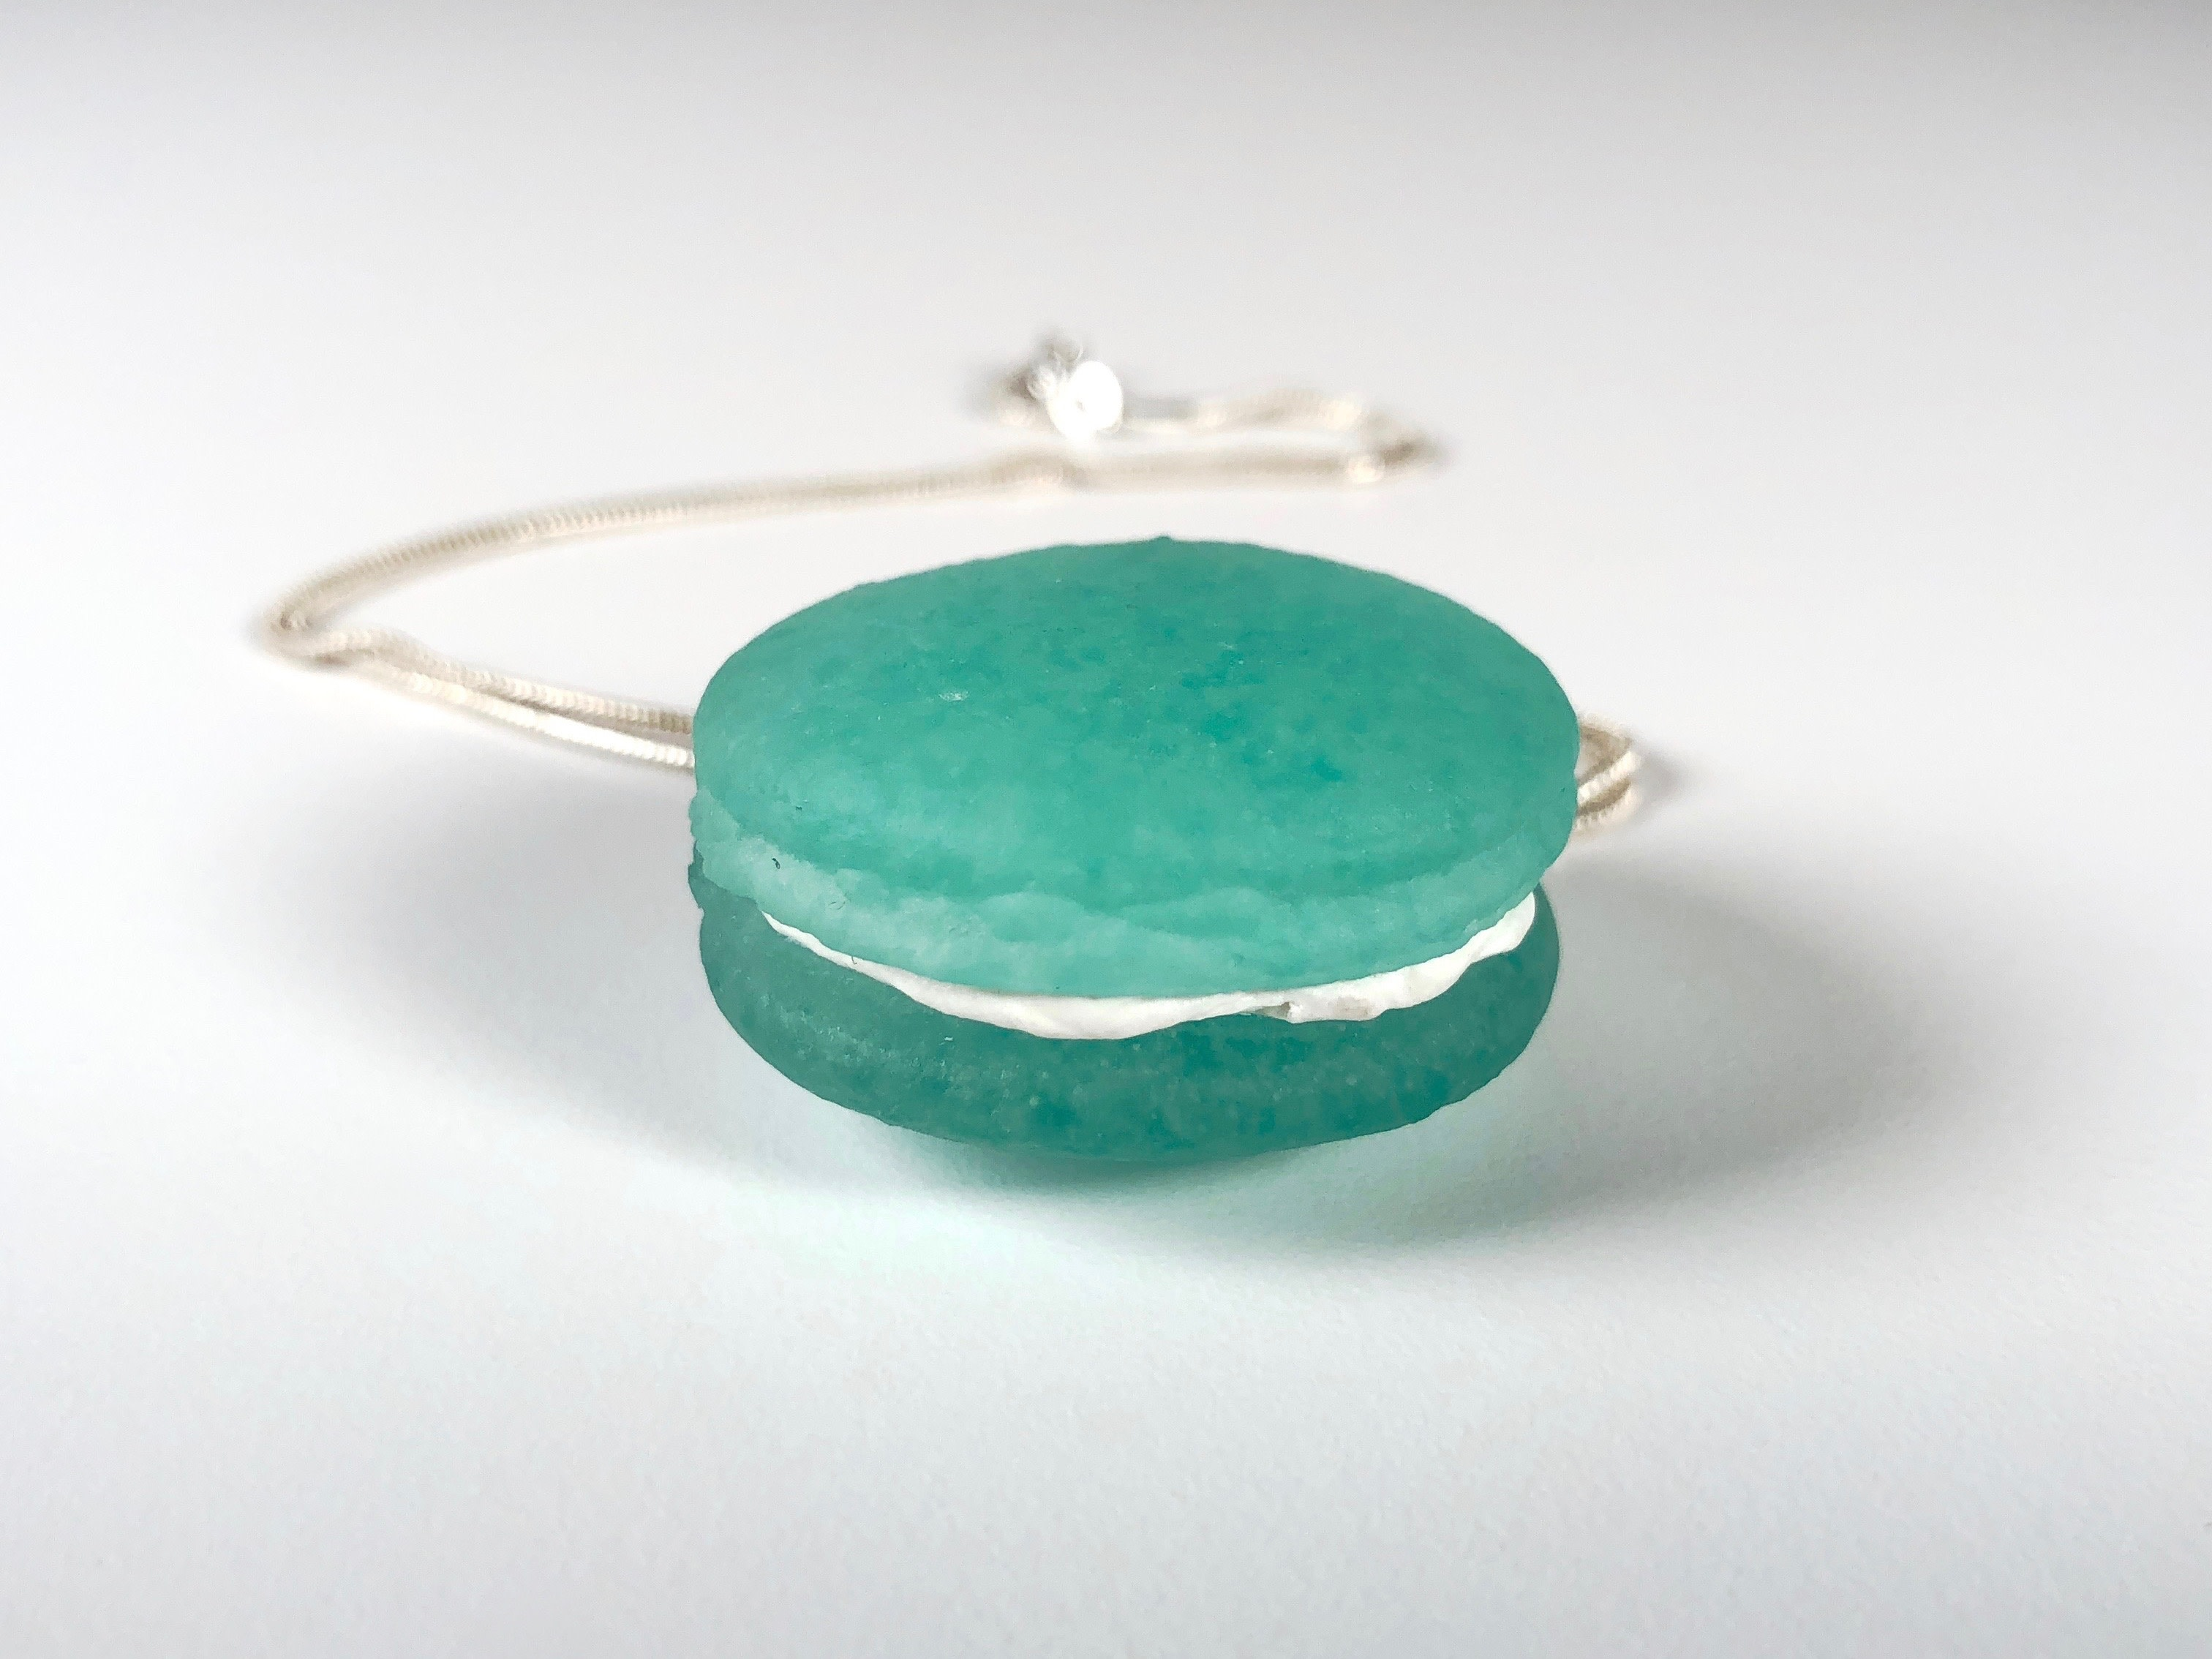 Meredith Edmondson, Turquoise Macaron Necklace, kilnformed glass, sterling silver chain